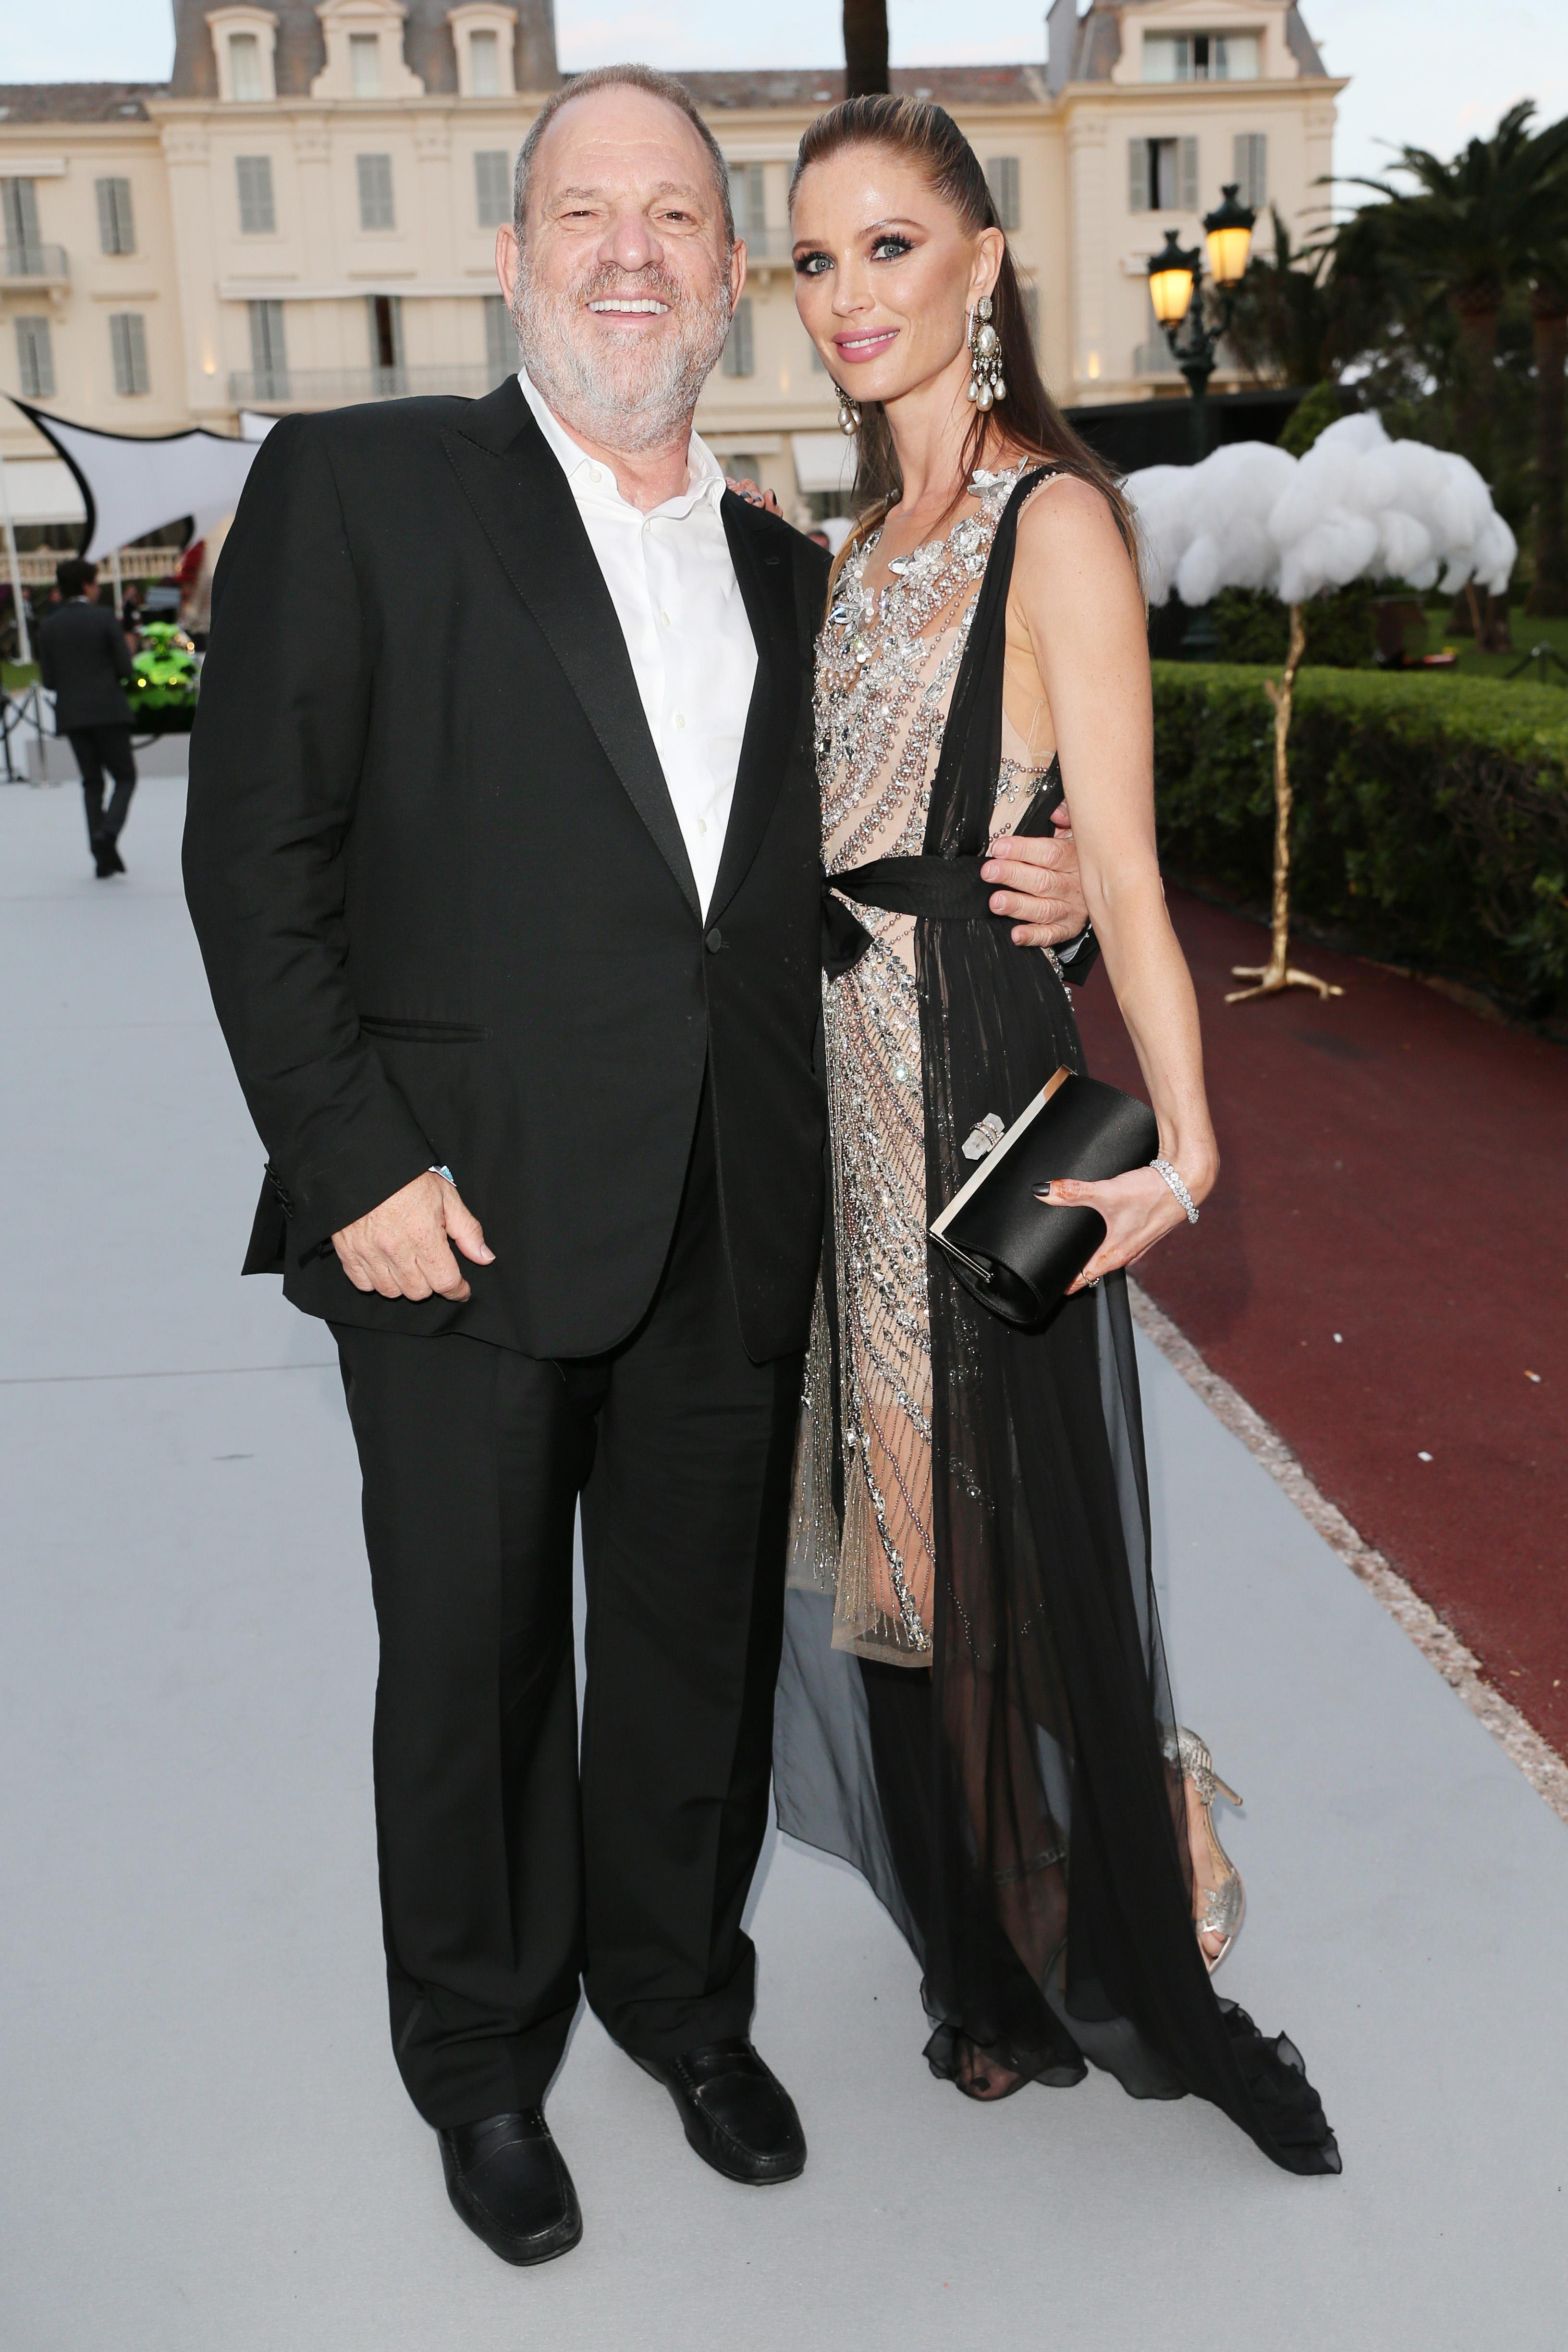 4f28fdb8d1 Harvey Weinstein and Georgina Chapman attend the Cannes Film Festival in  May. (Photo: Gisela Schober/Getty Images)